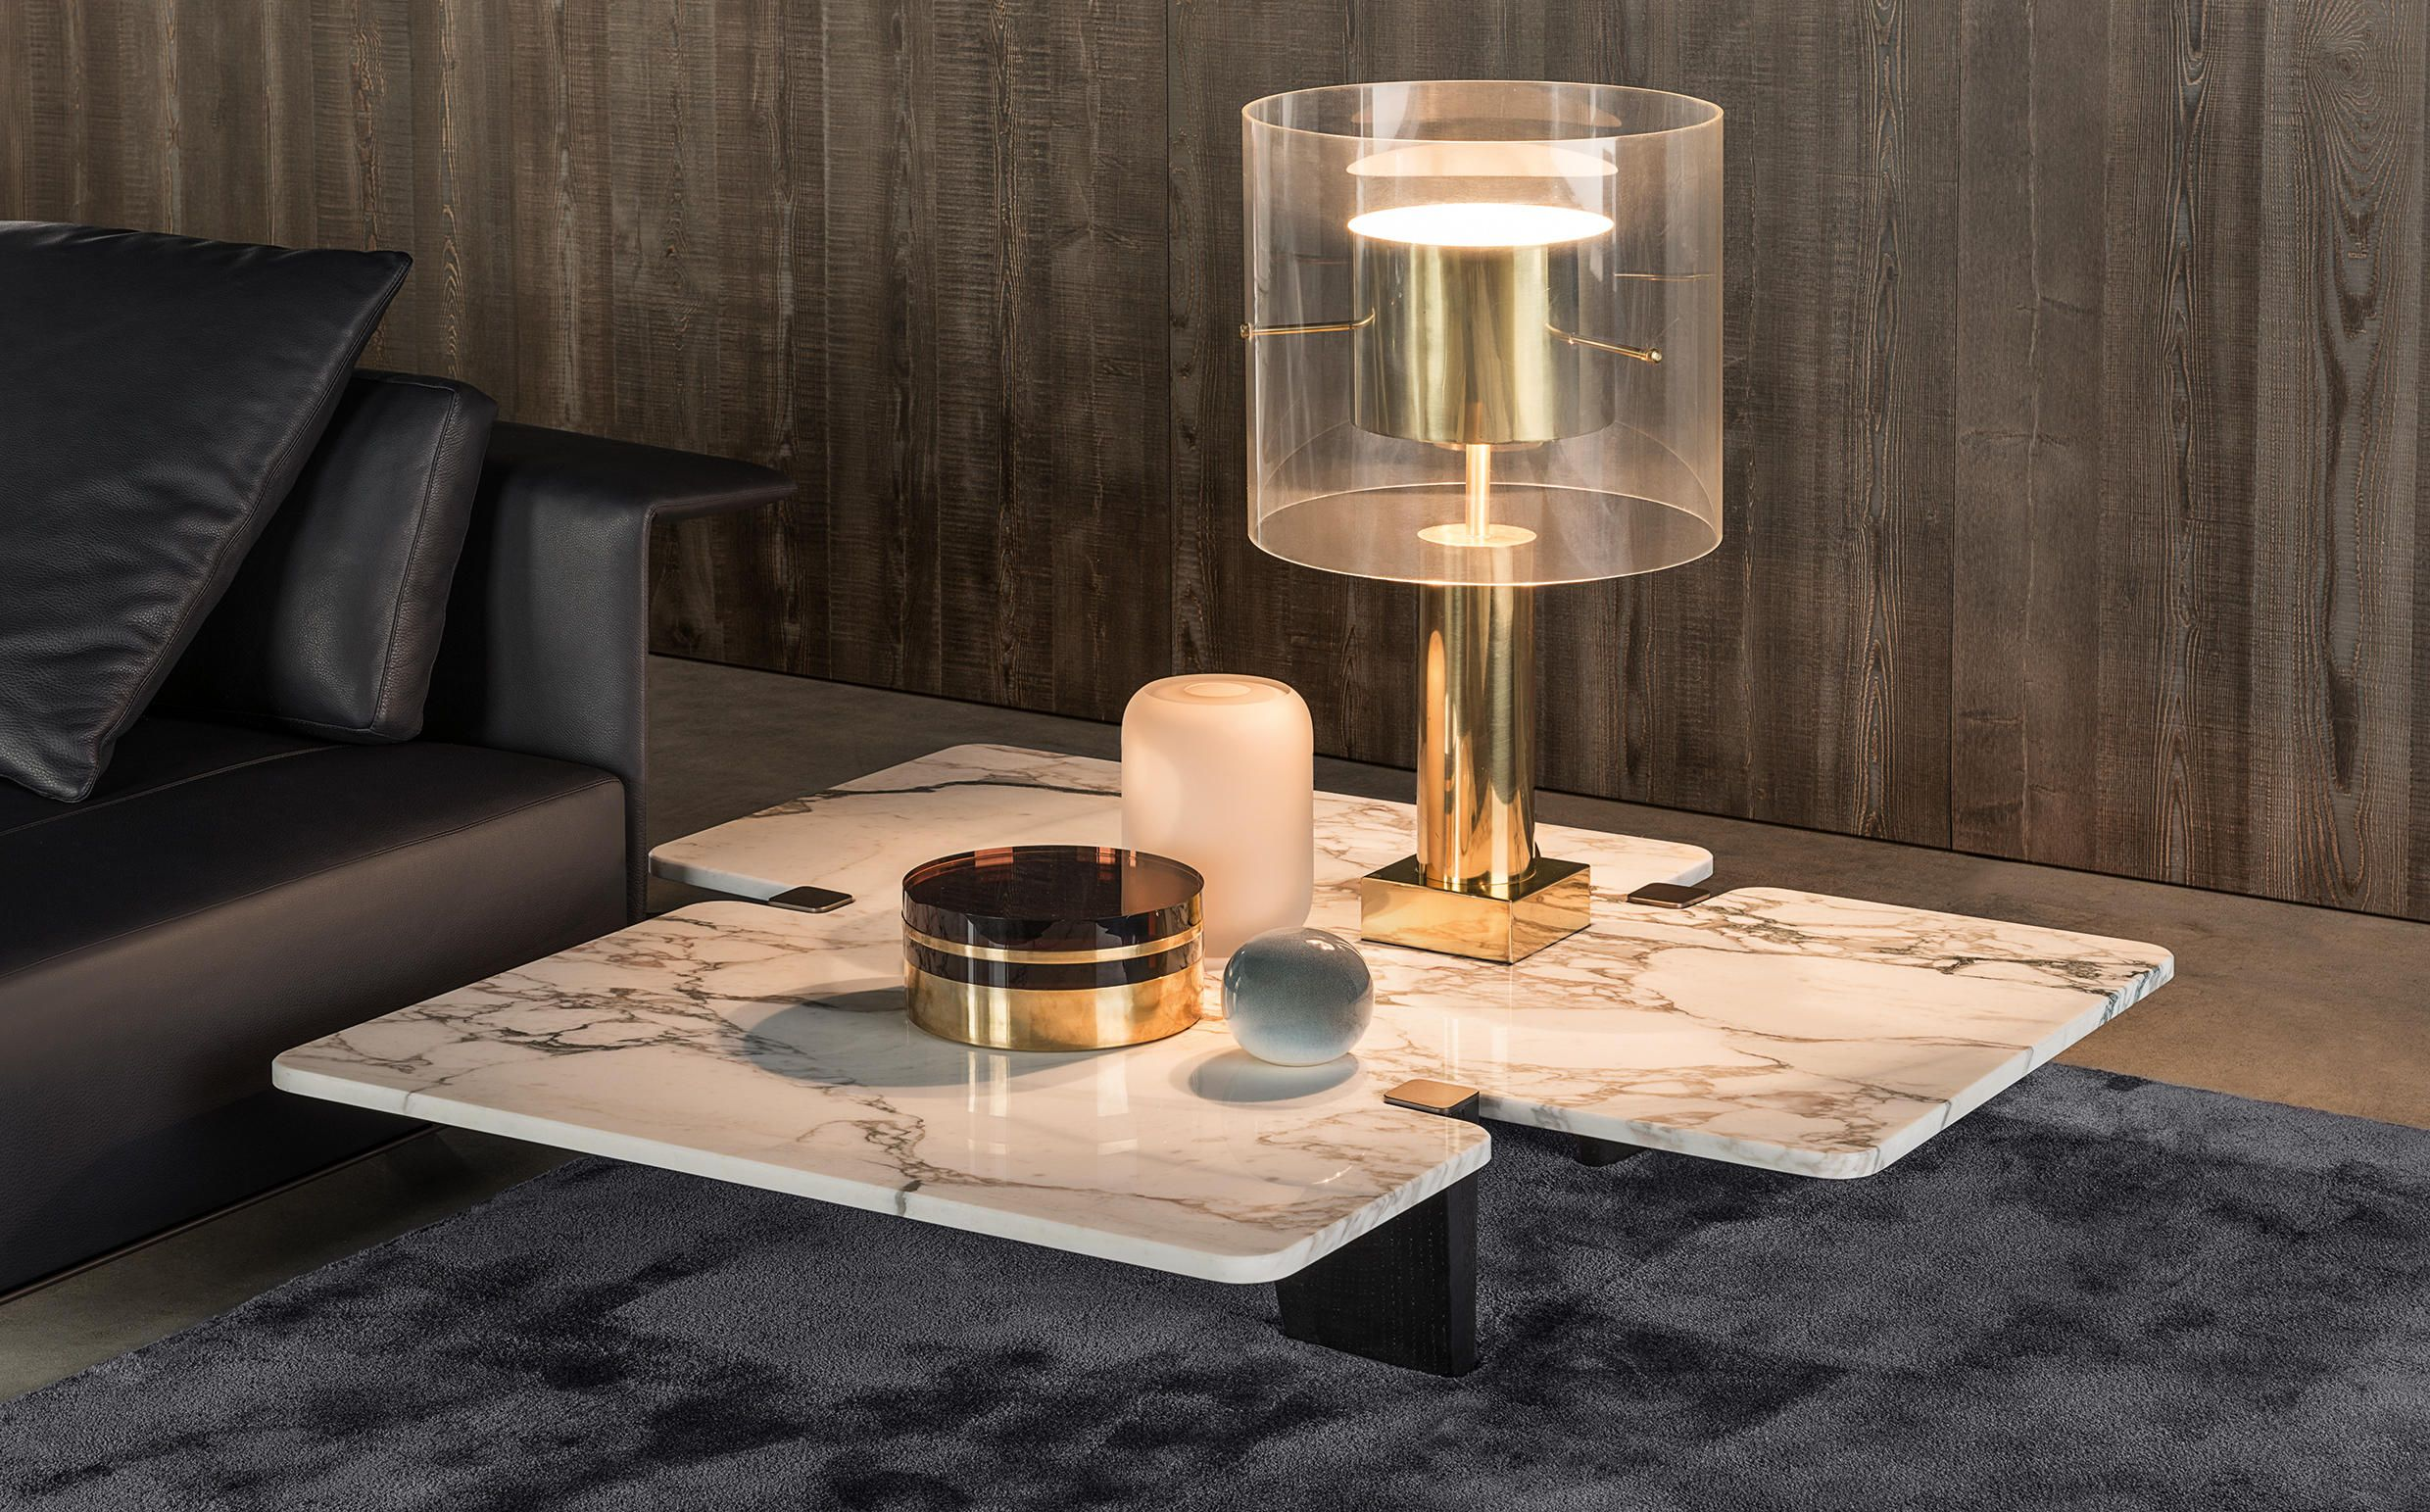 Jacob Coffee Table Designer Lounge Tables From Minotti All Information High Resolution Images Cads Minotti Coffee Table Marble Tables Design